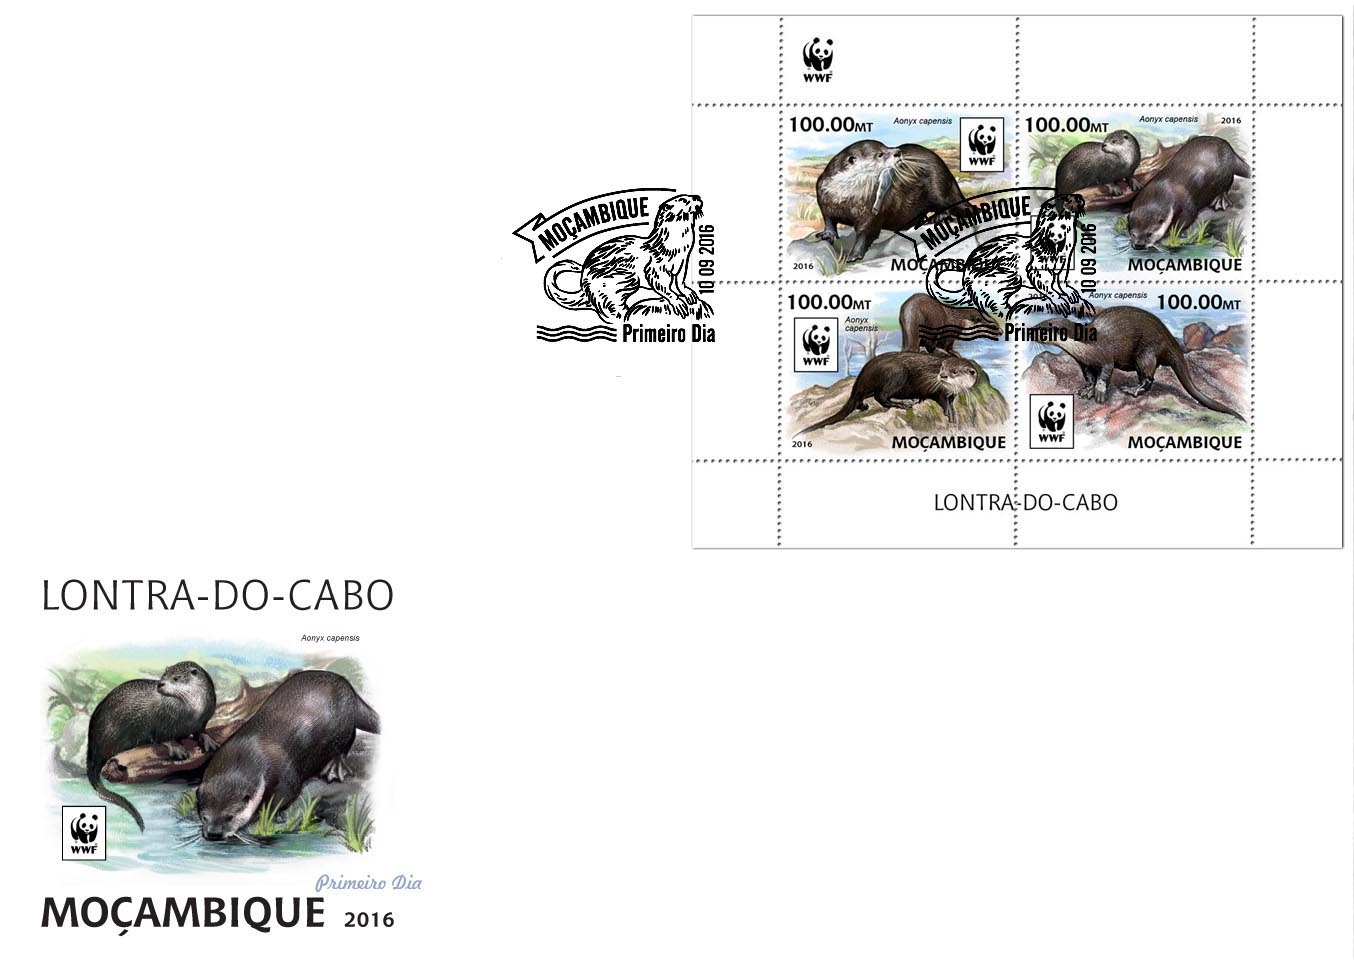 WWF – Otter (FDC) - Issue of Mozambique postage Stamps